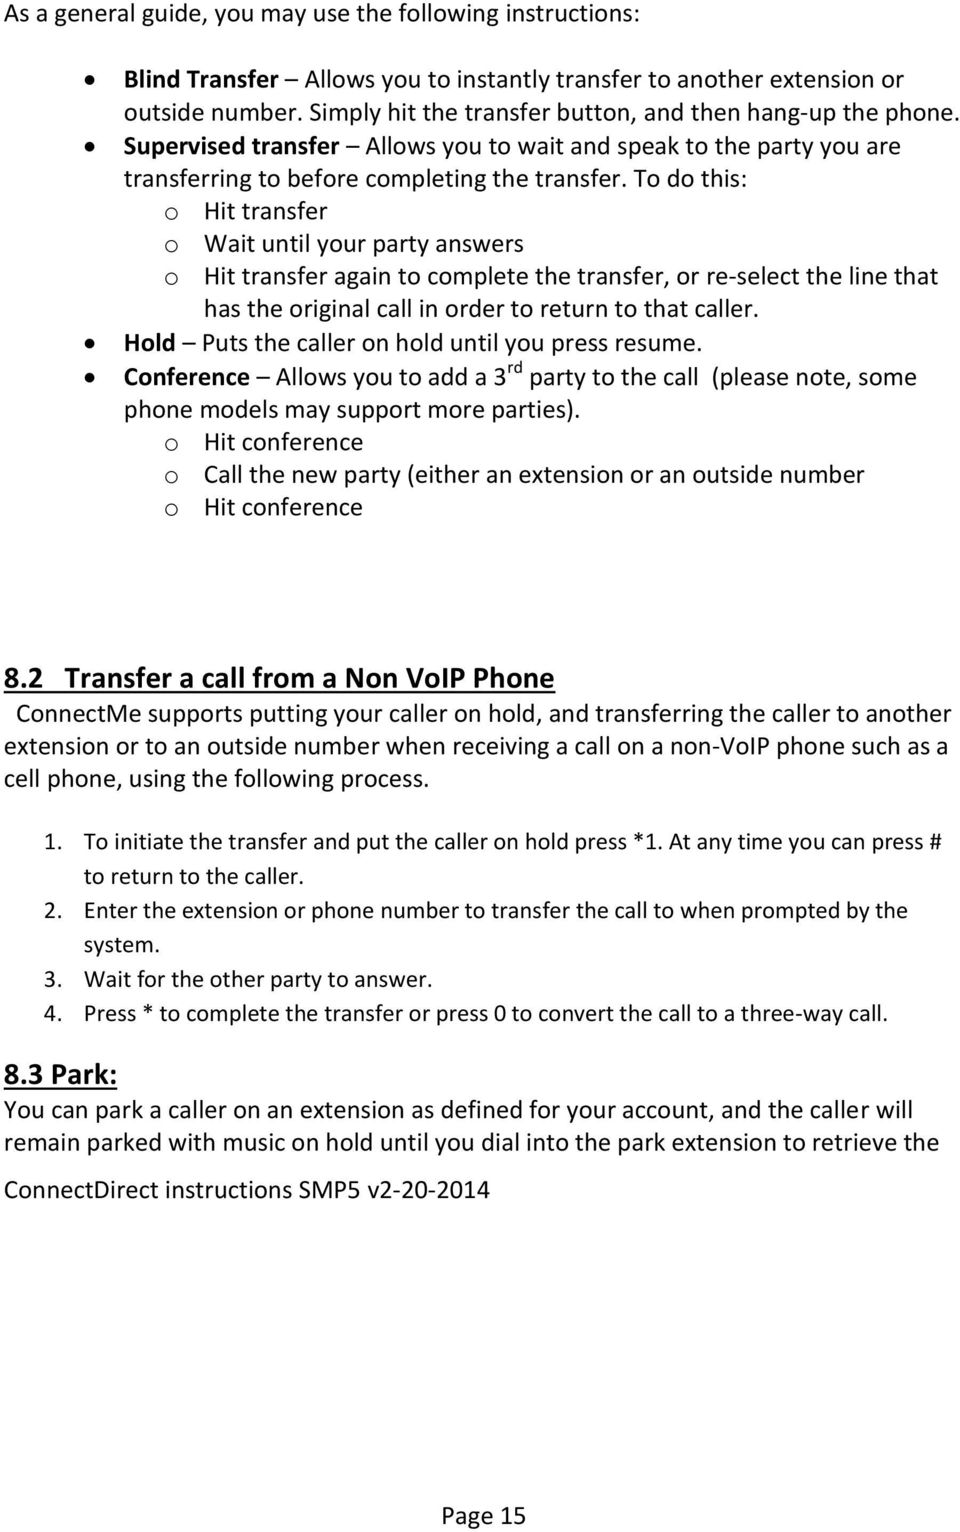 To do this: o Hit transfer o Wait until your party answers o Hit transfer again to complete the transfer, or re-select the line that has the original call in order to return to that caller.